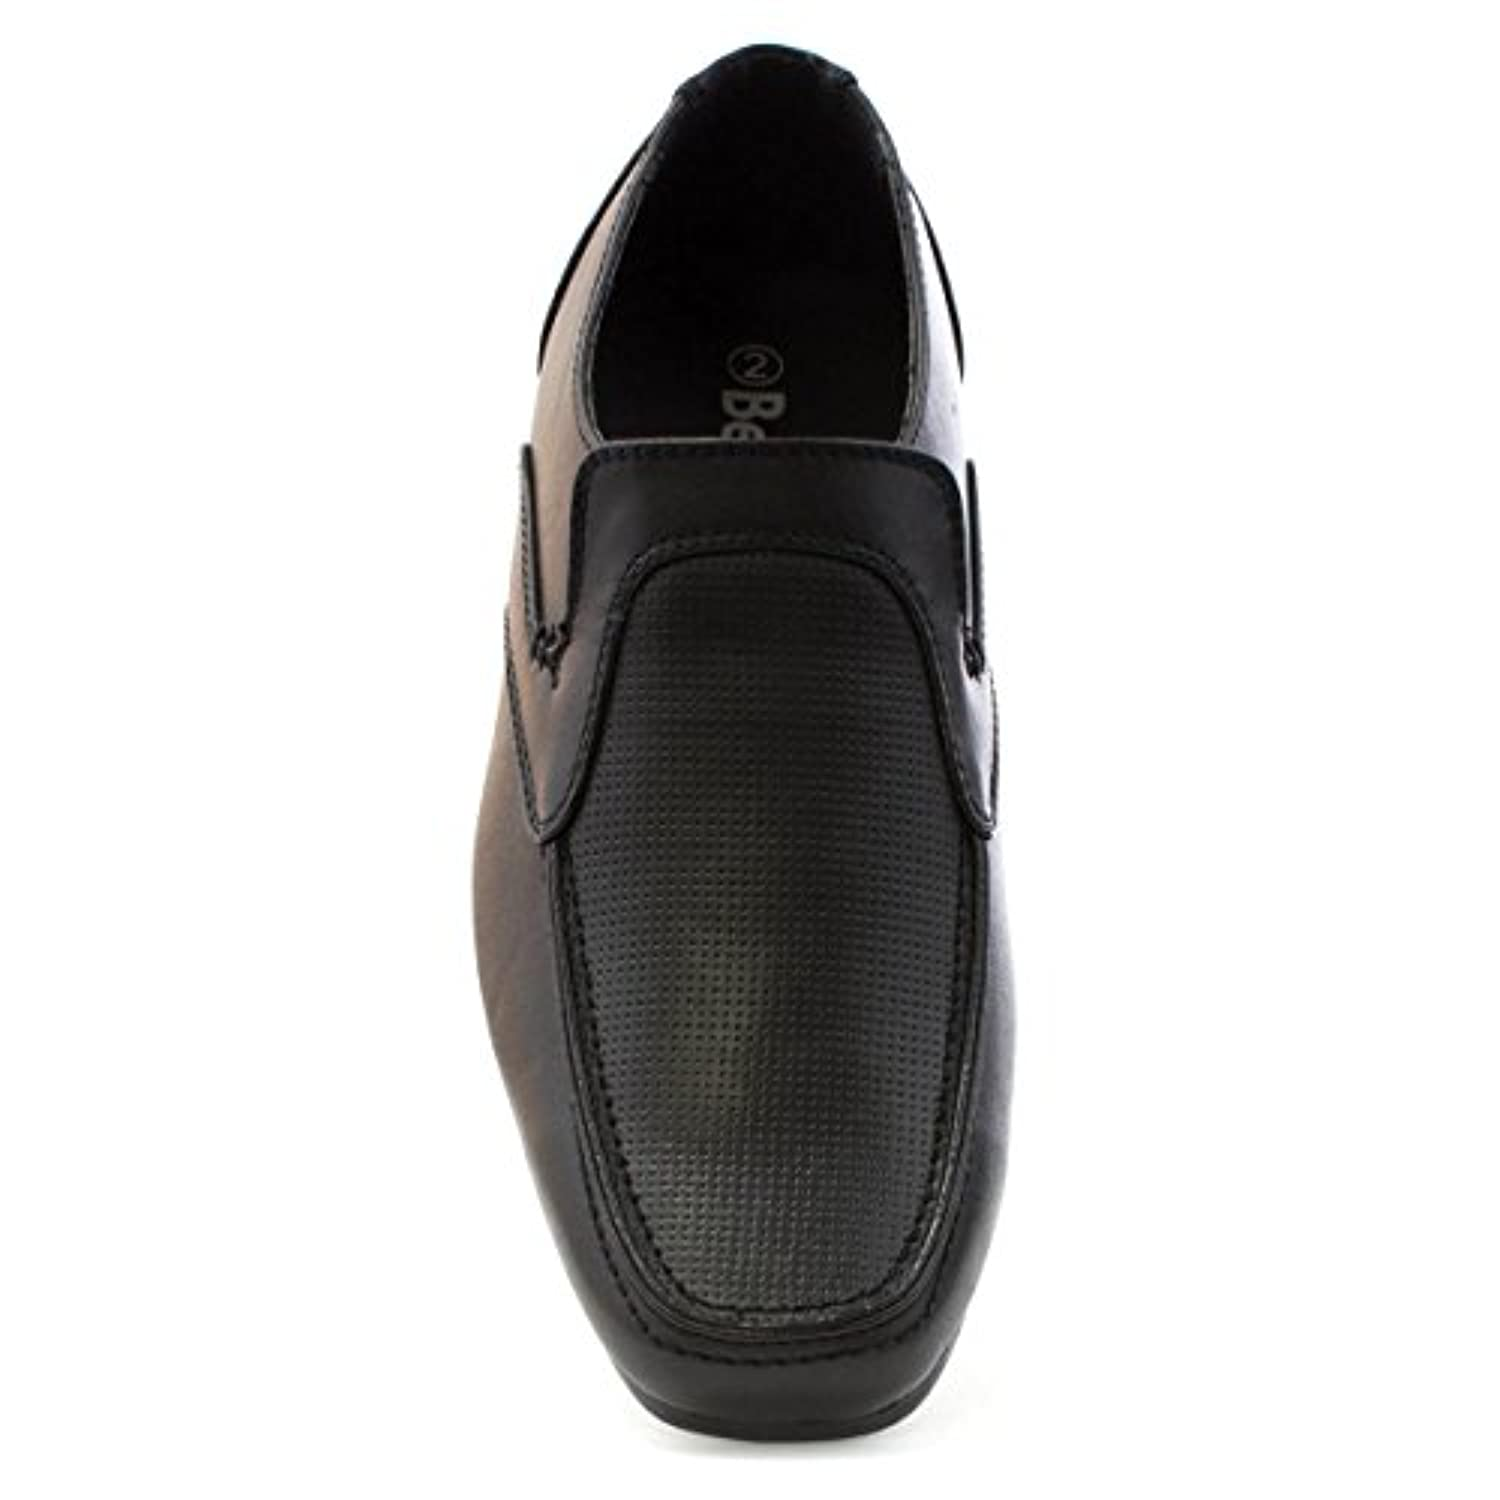 Beckett Boys Black Punch Effect Formal Shoe - Size 1 - Black